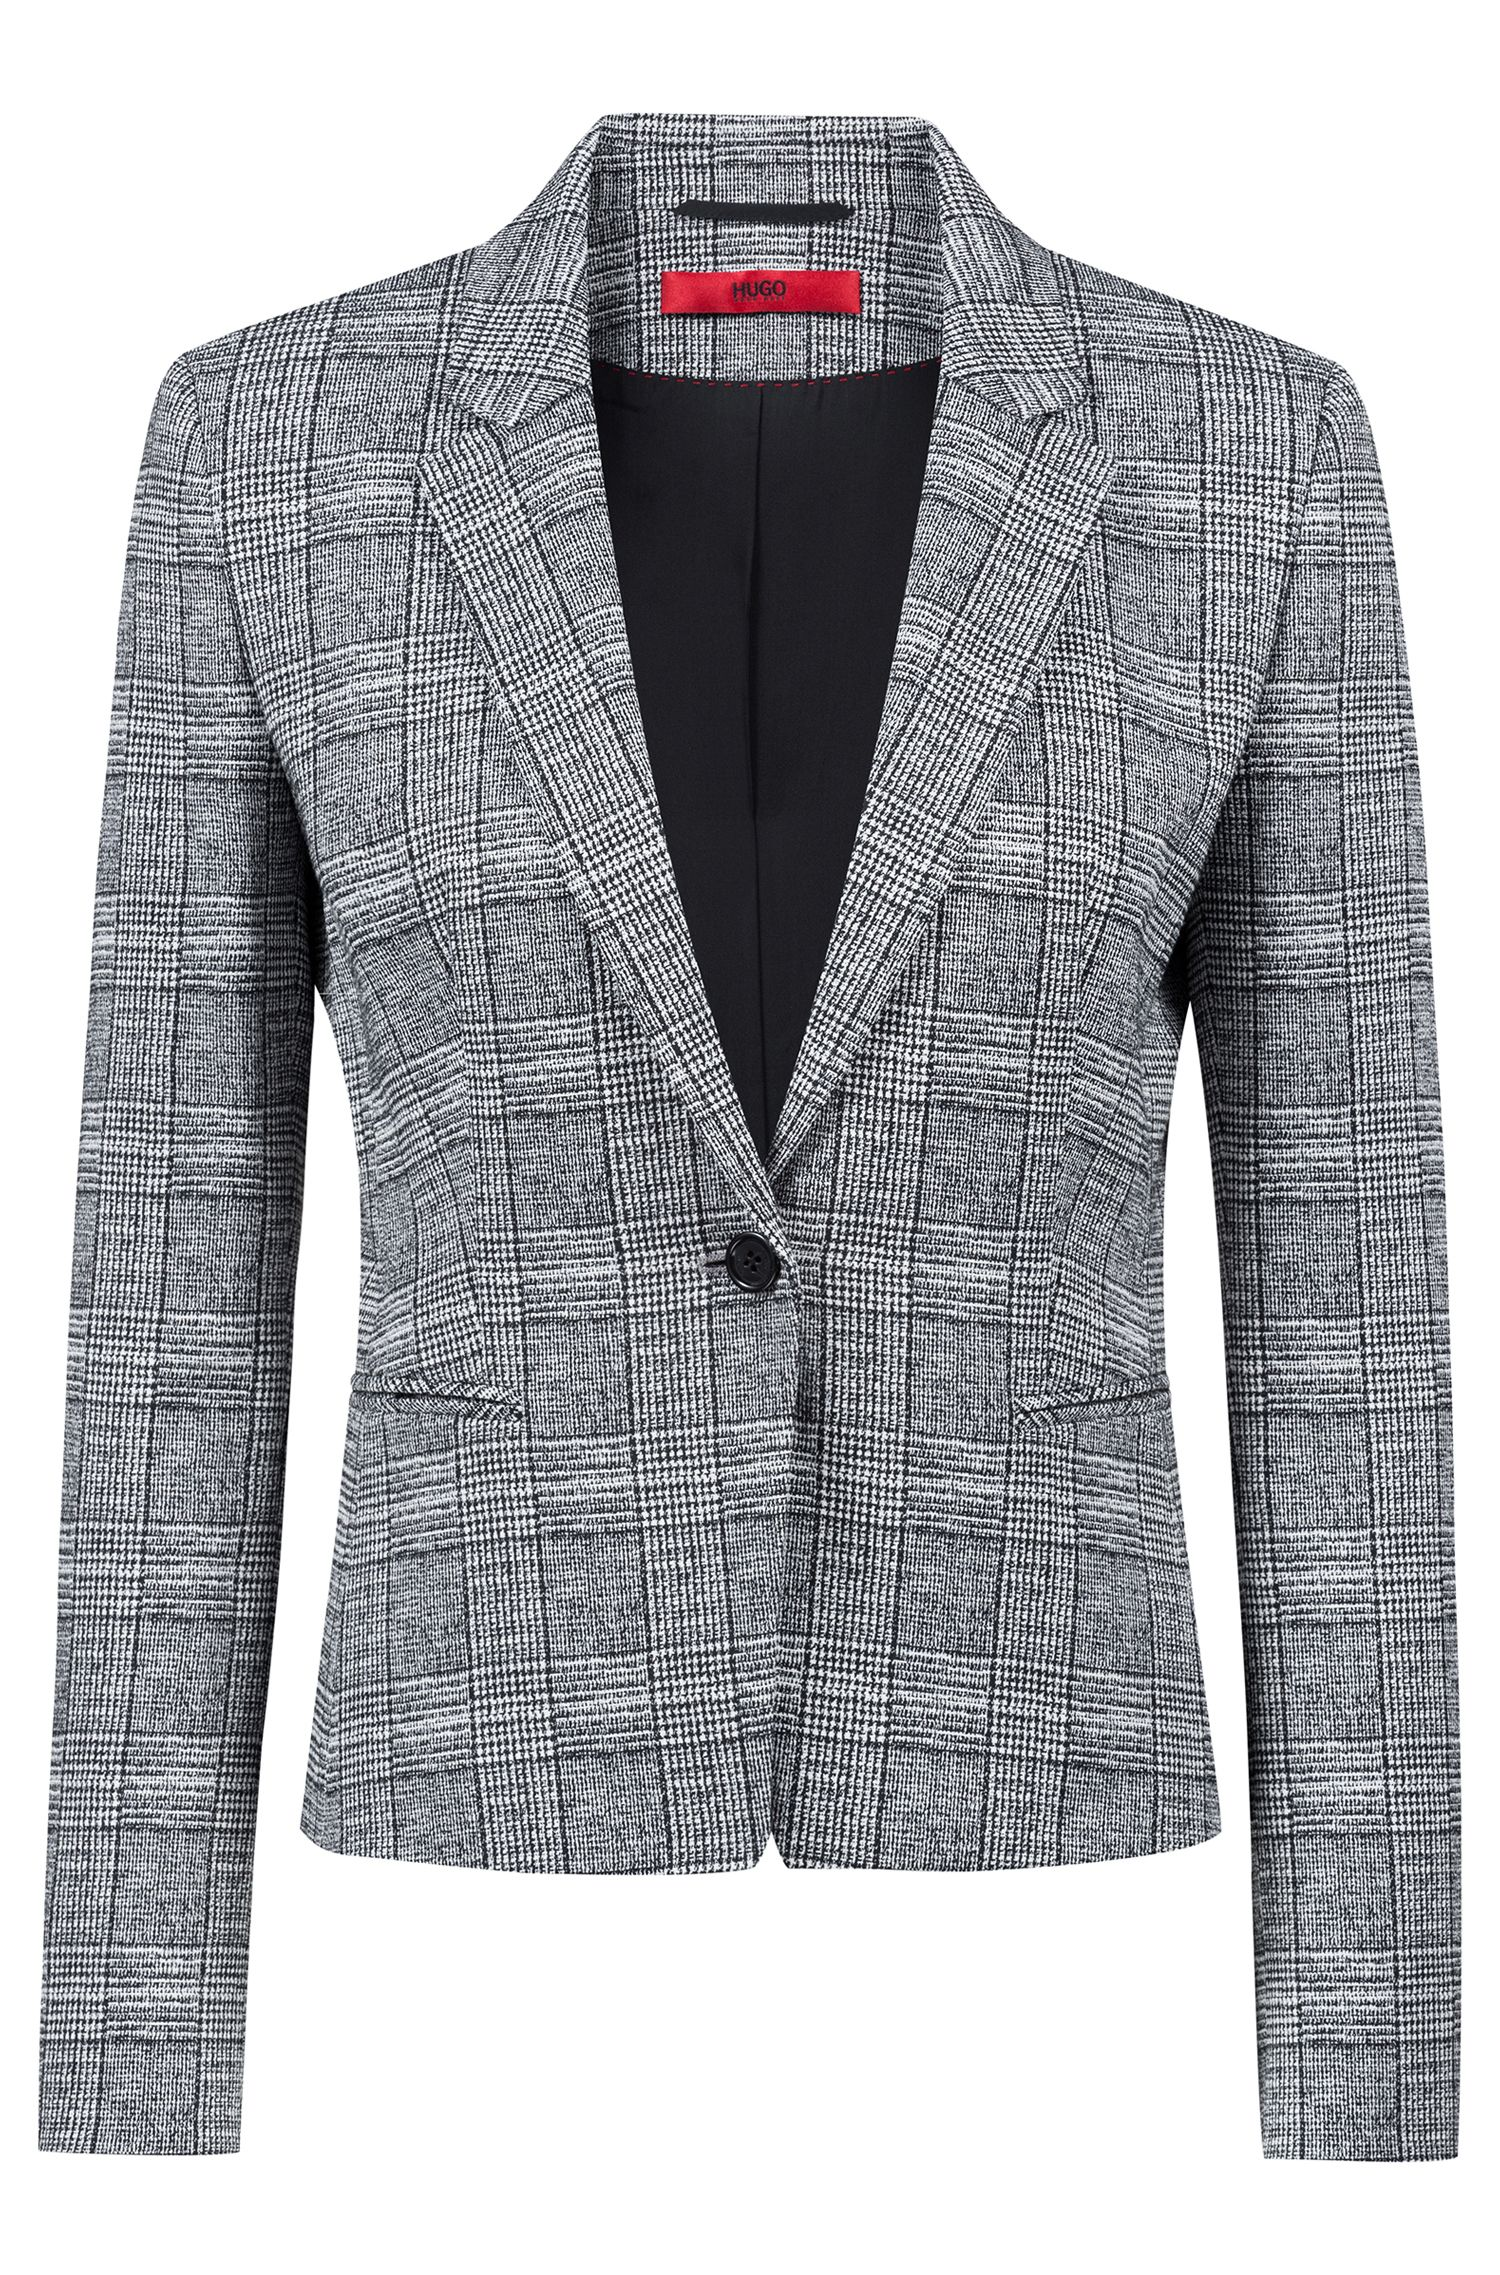 Slim-fit blazer in black-and-white check pattern, Patterned